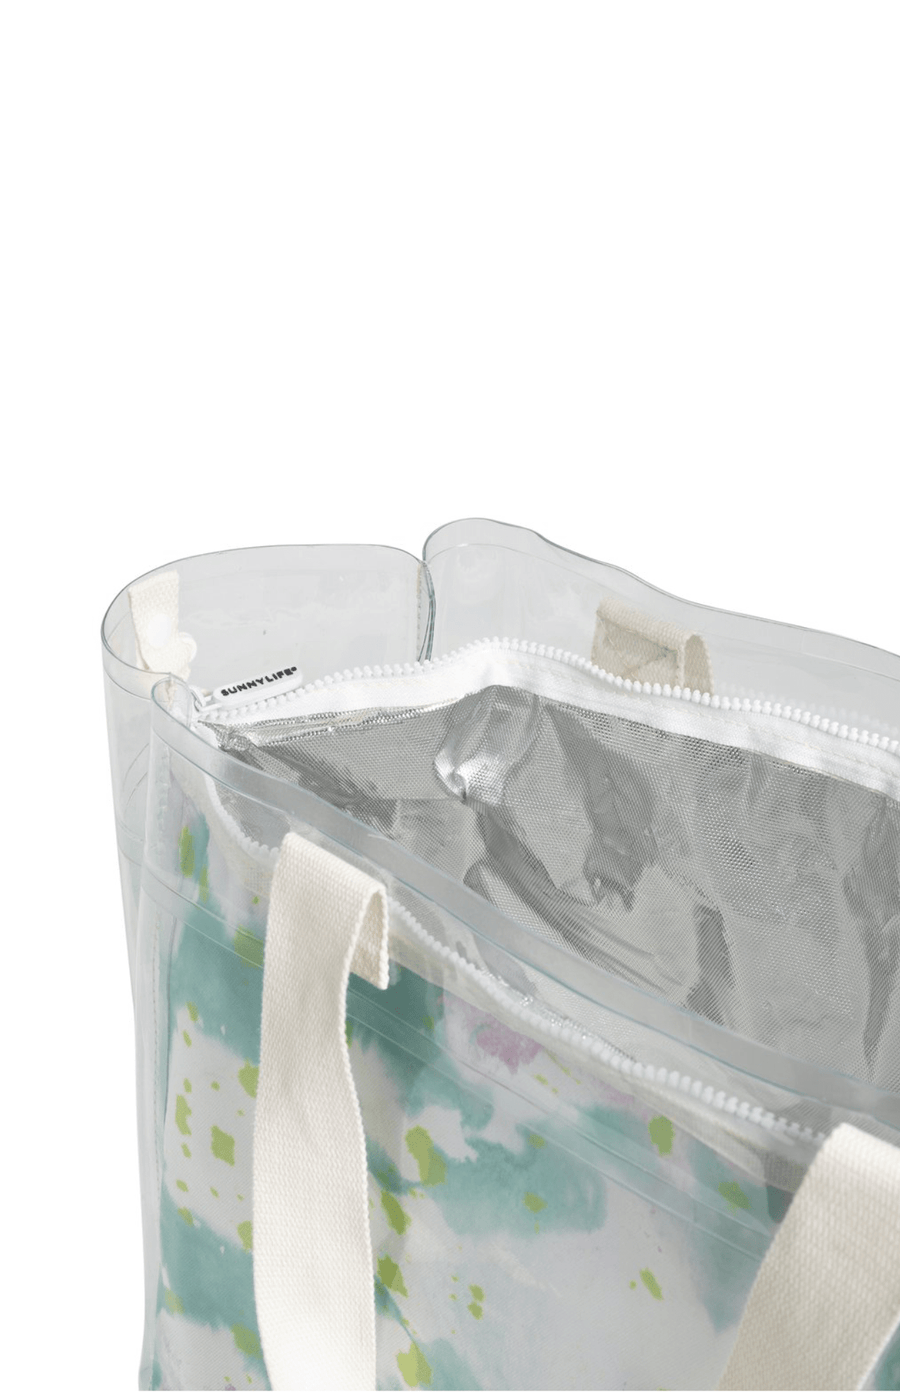 Sunnylife Cooler Carry Me Tote - Tie Dye